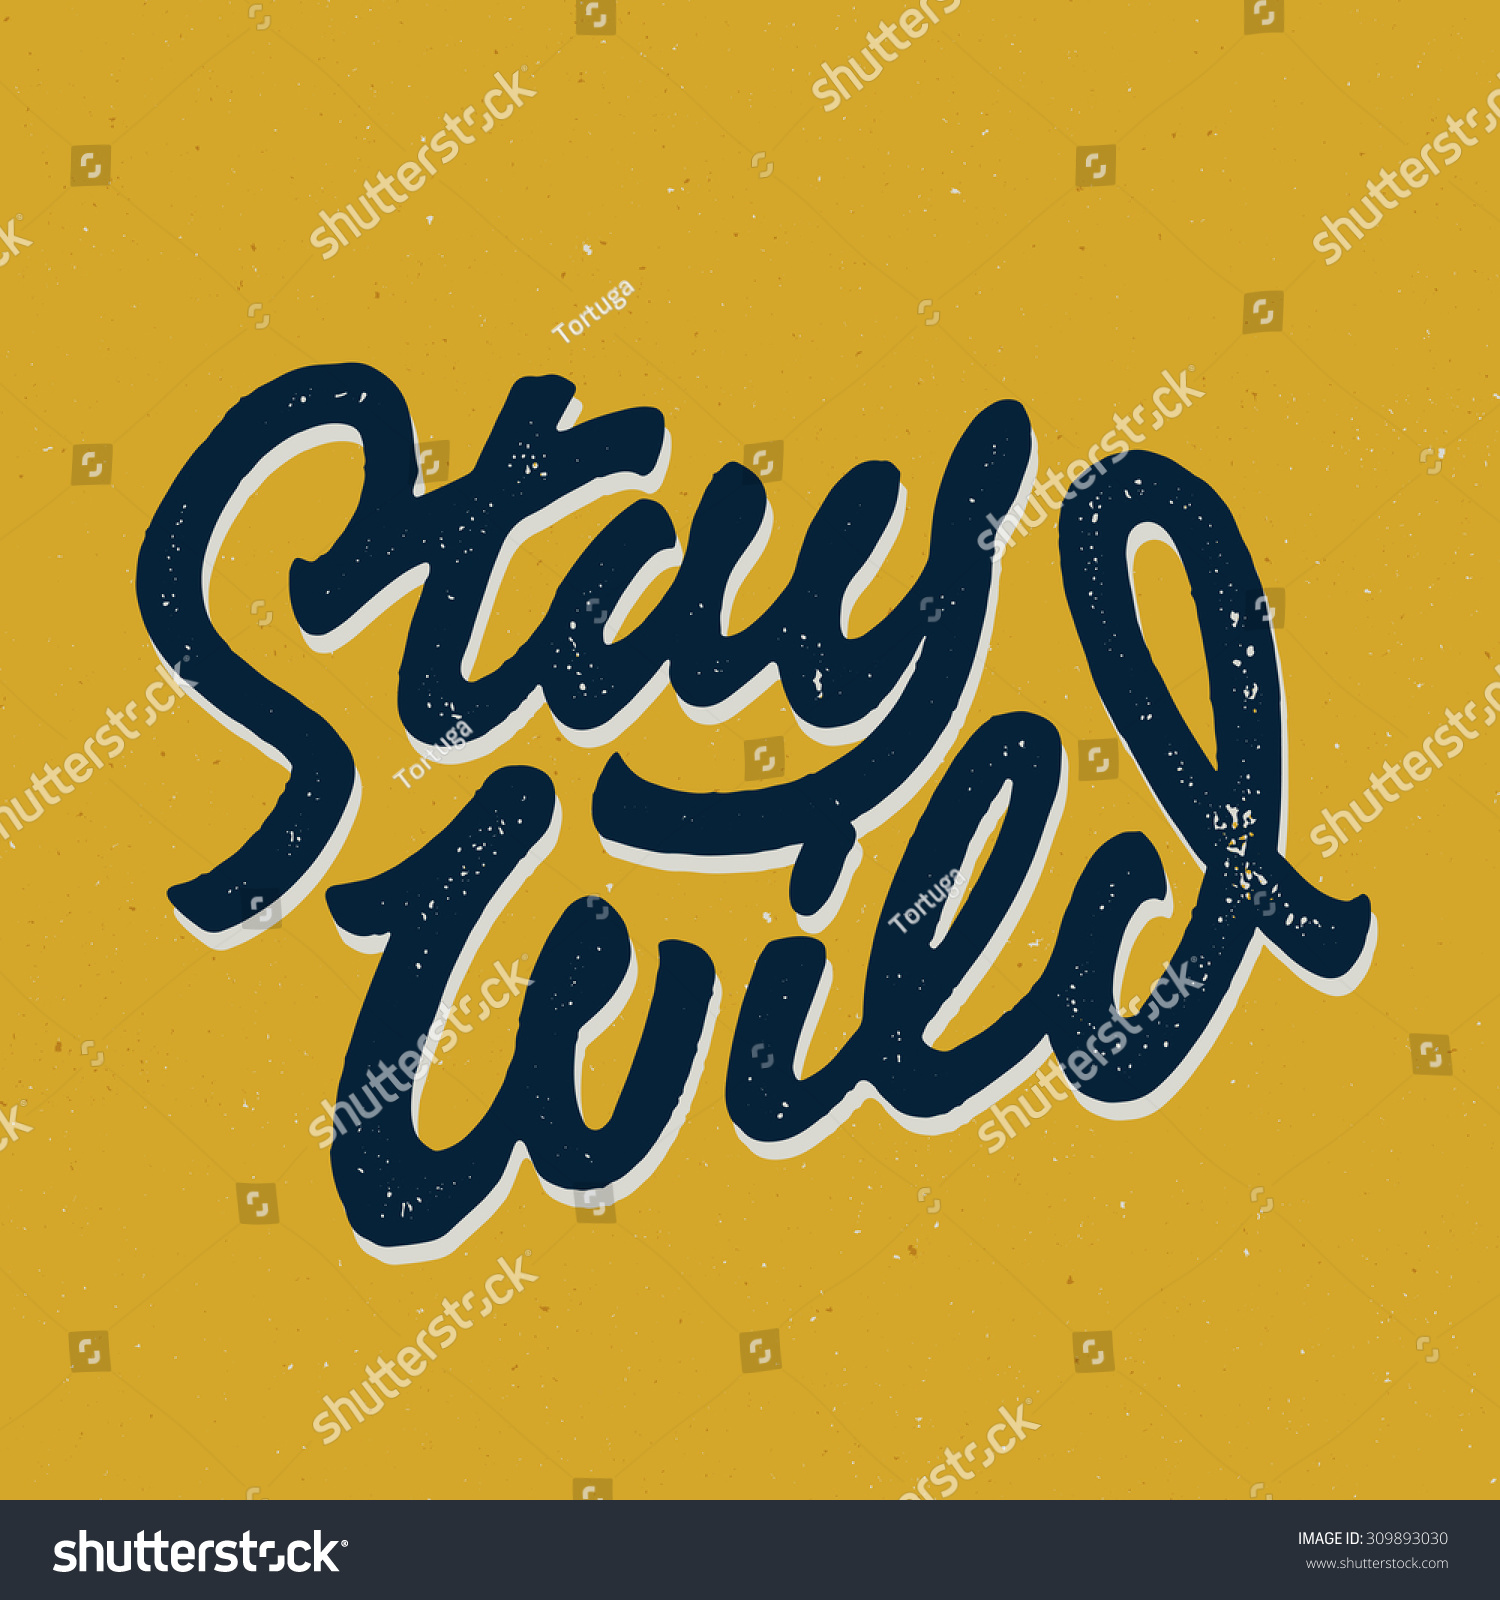 Stay Wild Old School Hand Drawn Stock Vector 309893030 - Shutterstock